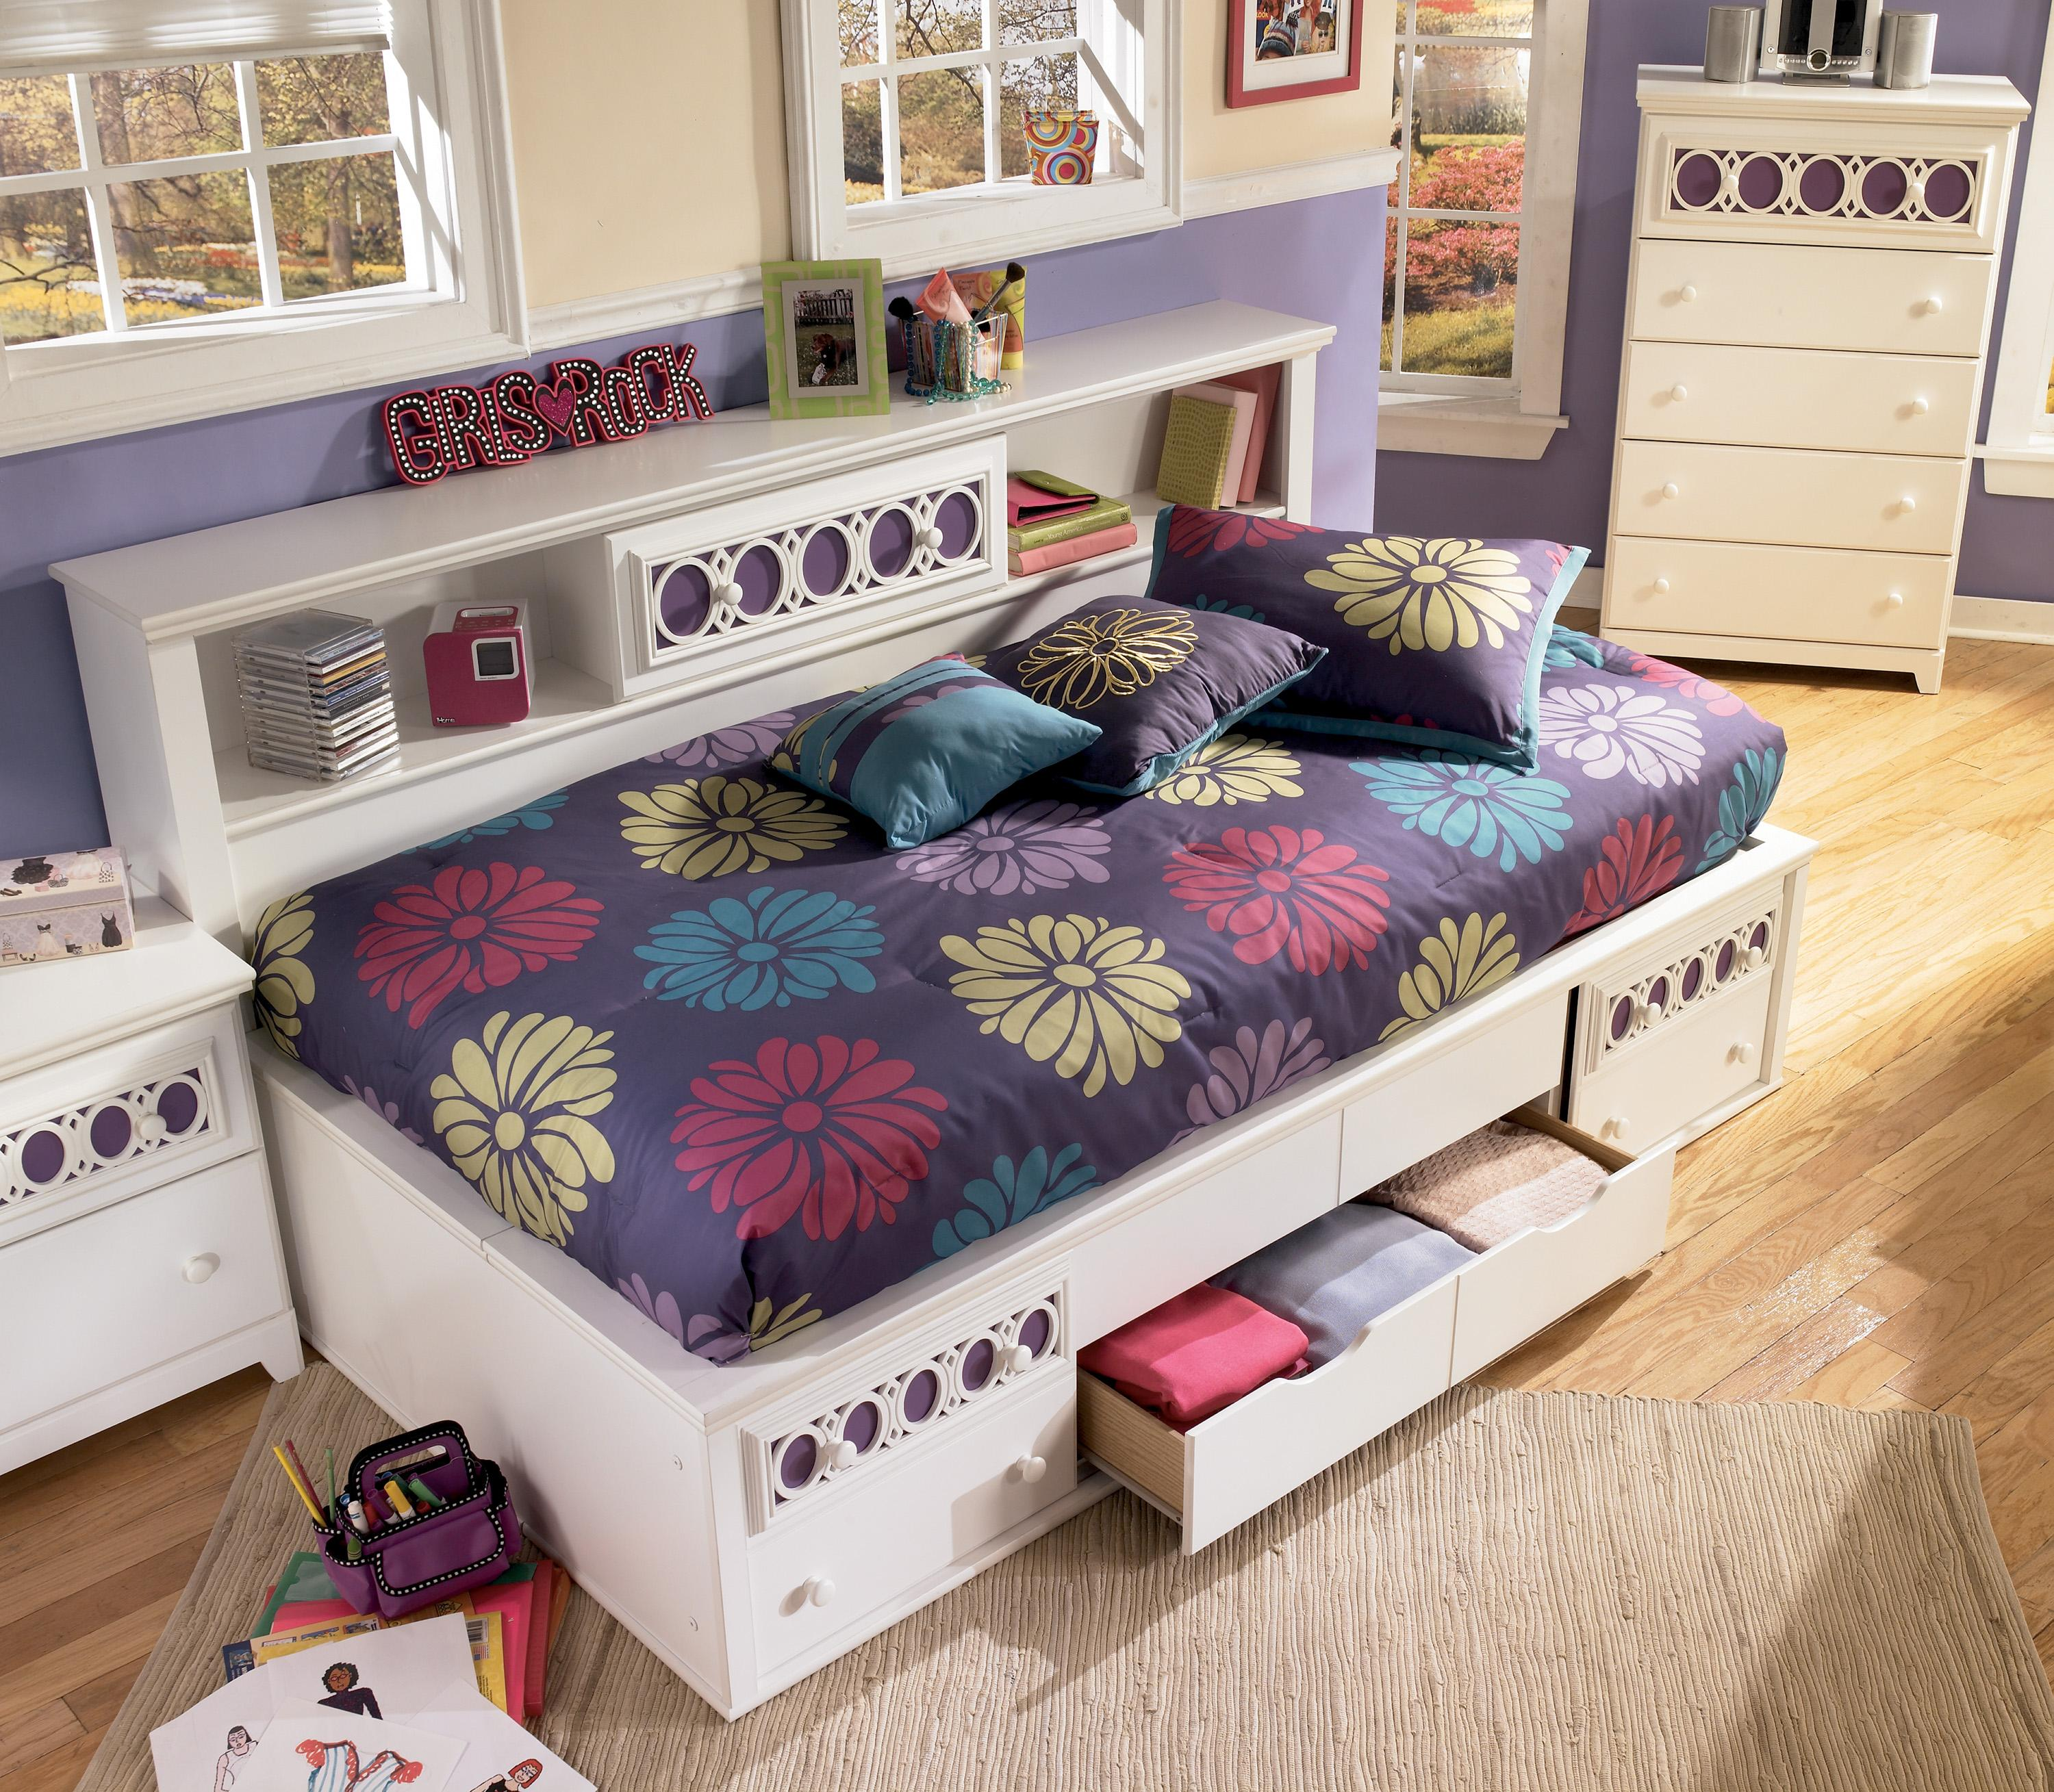 Hays Furniture Hopkinsville Ky ... with Customizable Color Panels - Del Sol Furniture - Captain's Bed